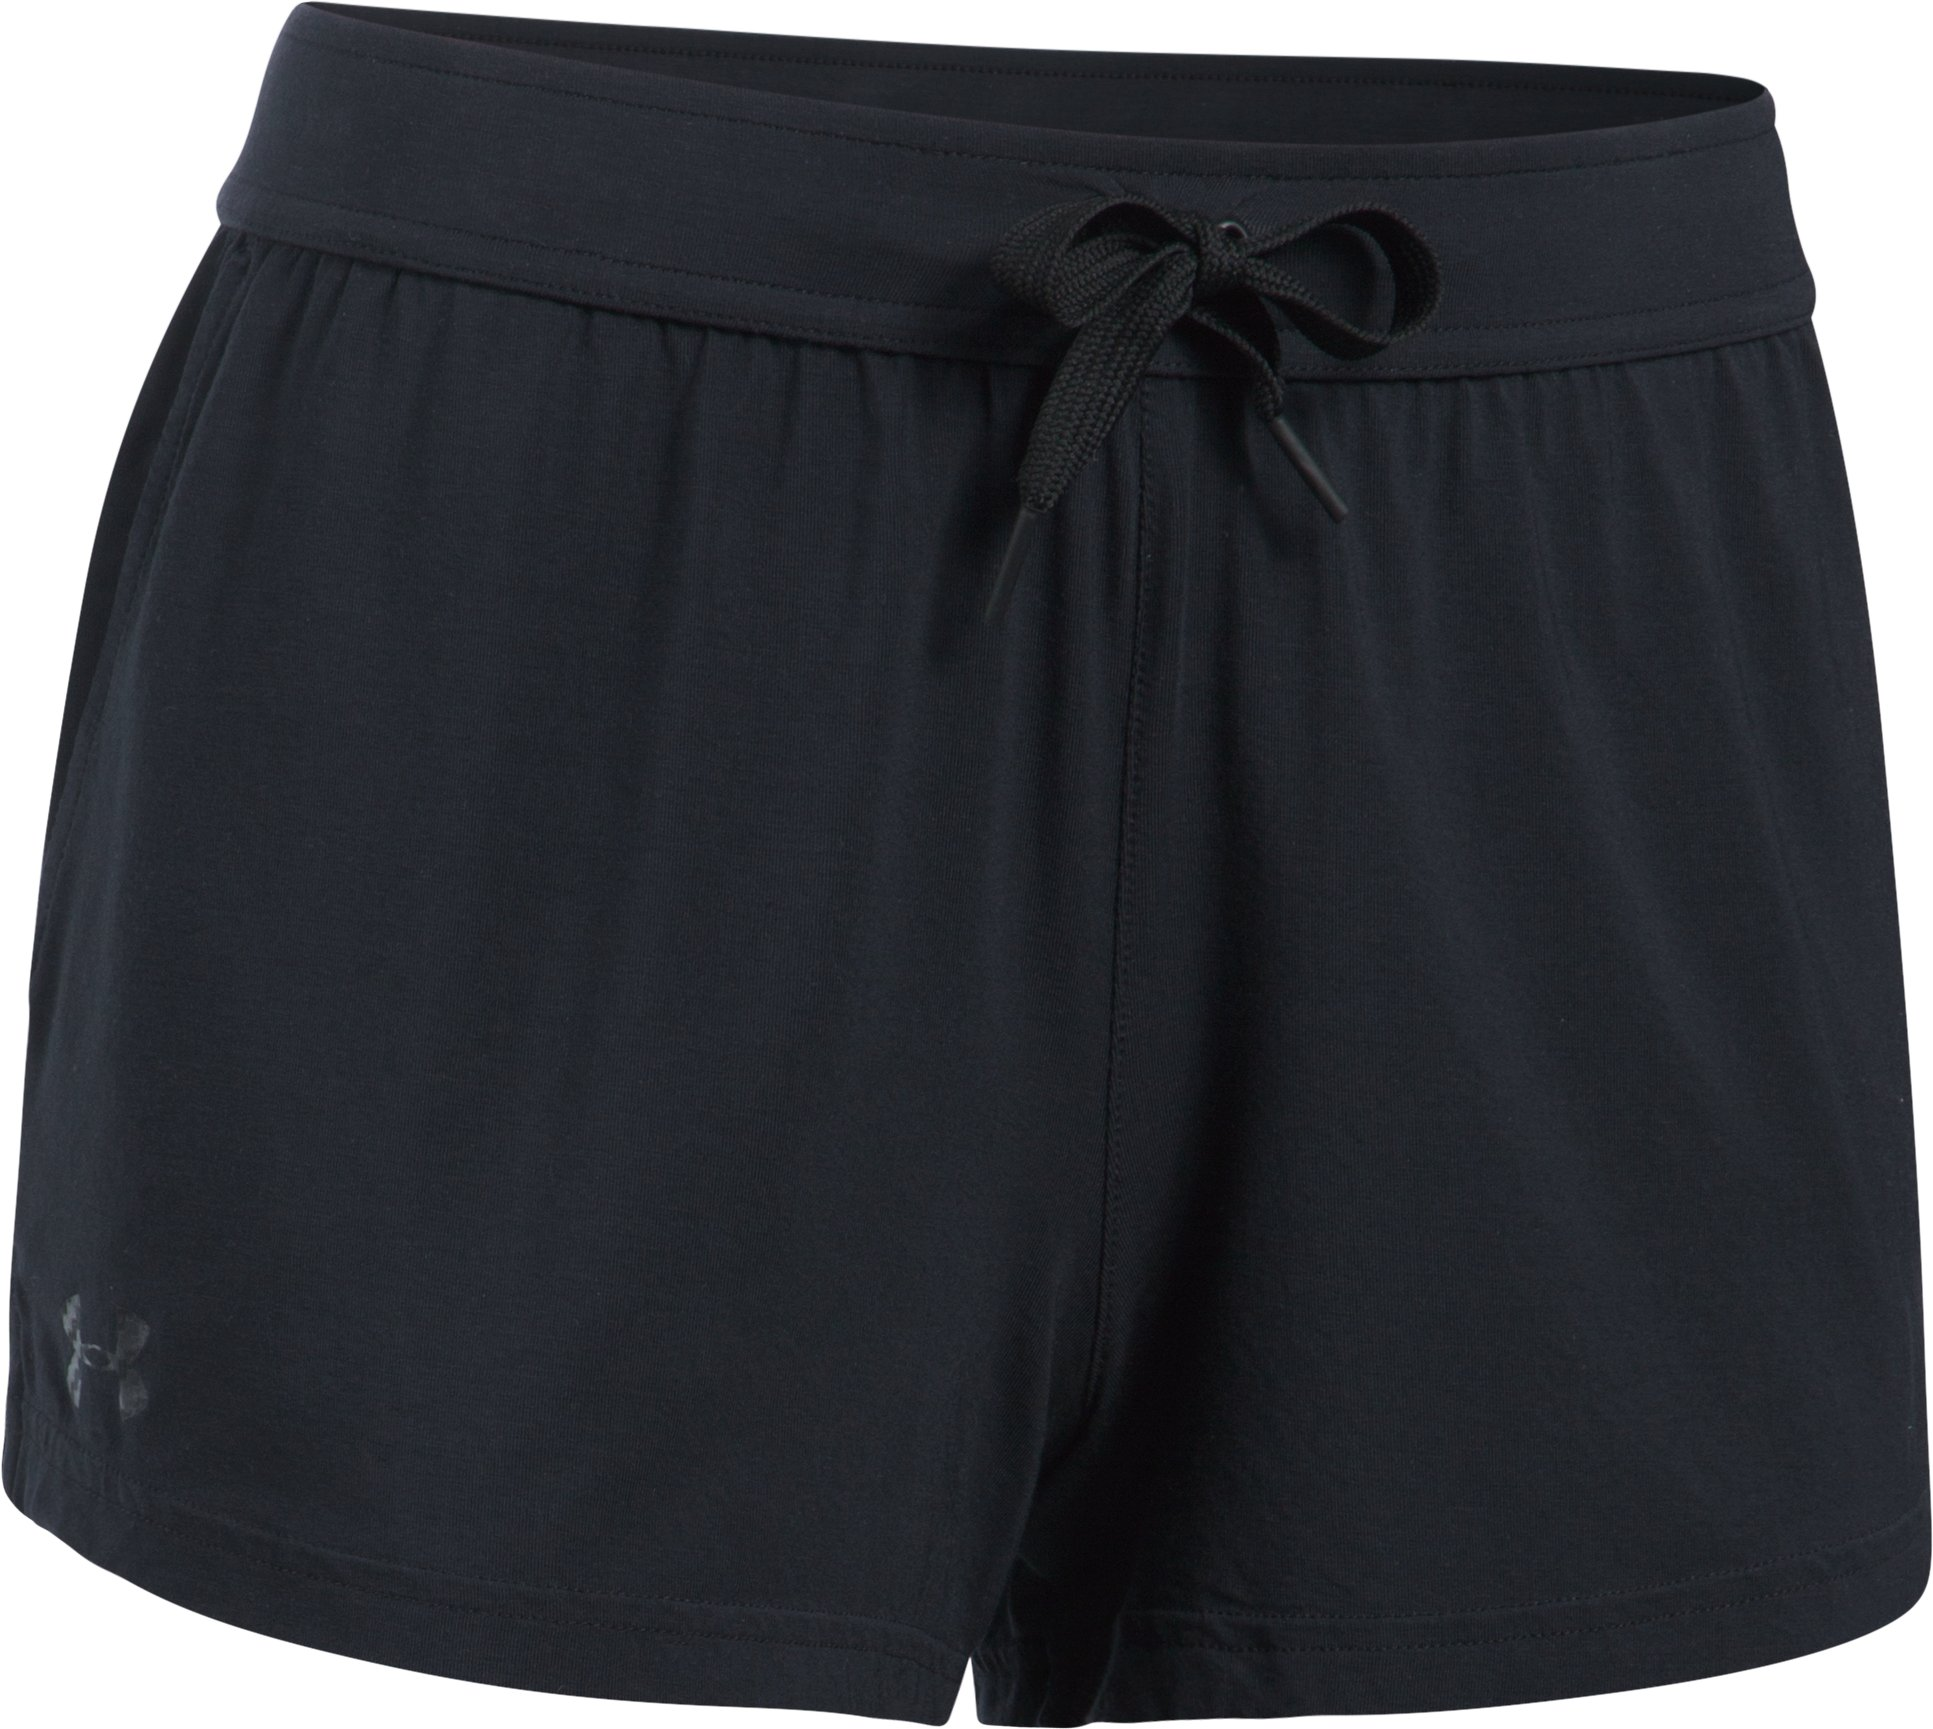 Women's Athlete Recovery Ultra Comfort Sleepwear Shorts, Black ,